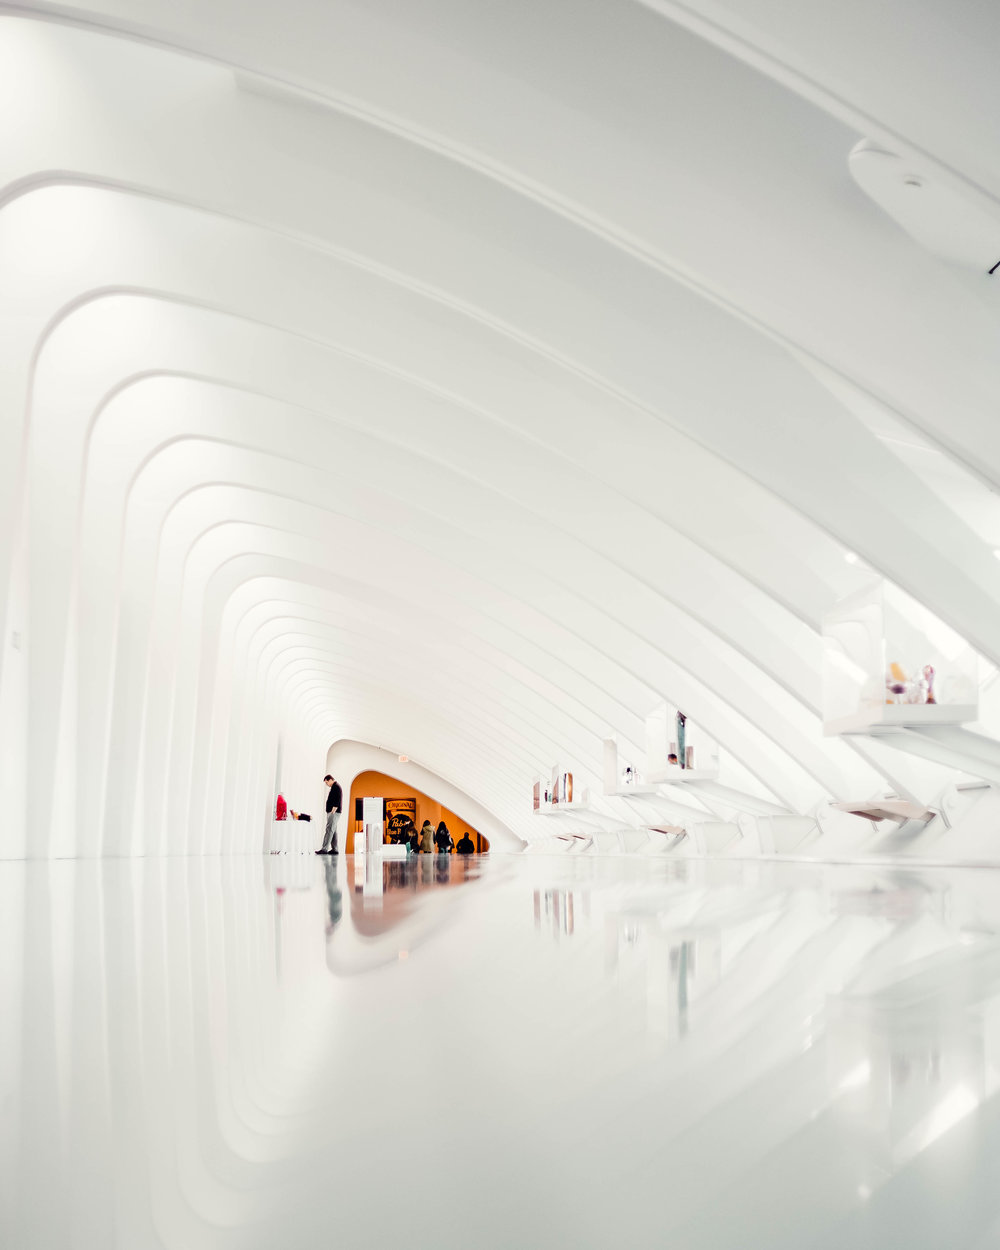 art museum interior white.jpg